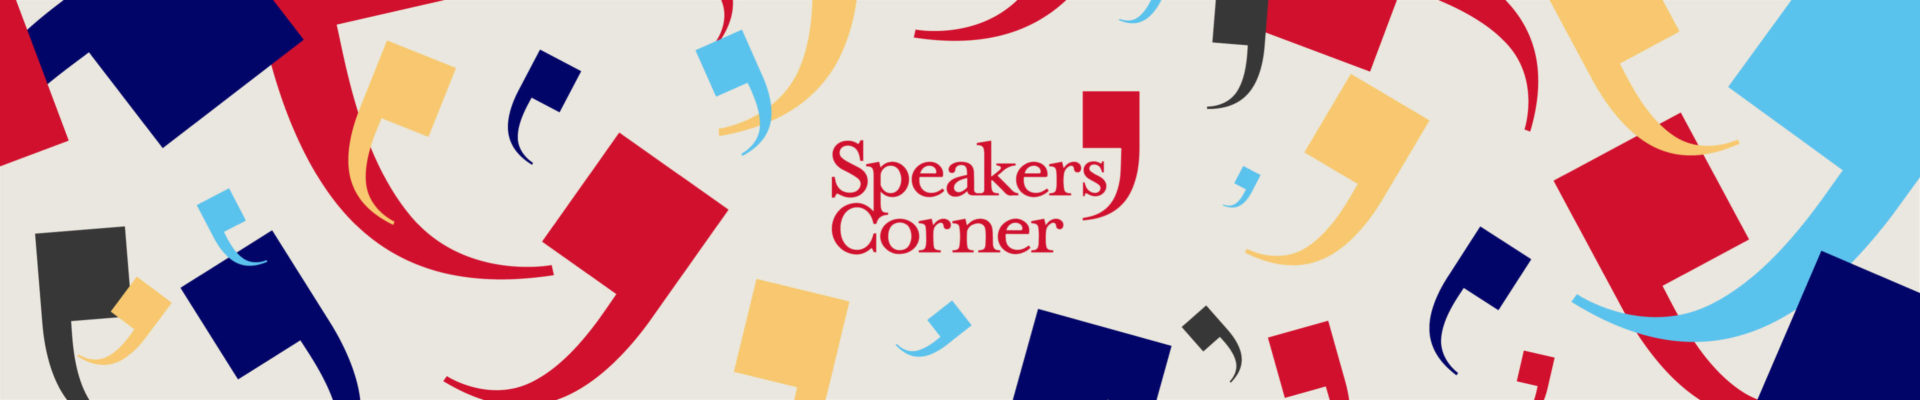 Case study of Speakers Corner